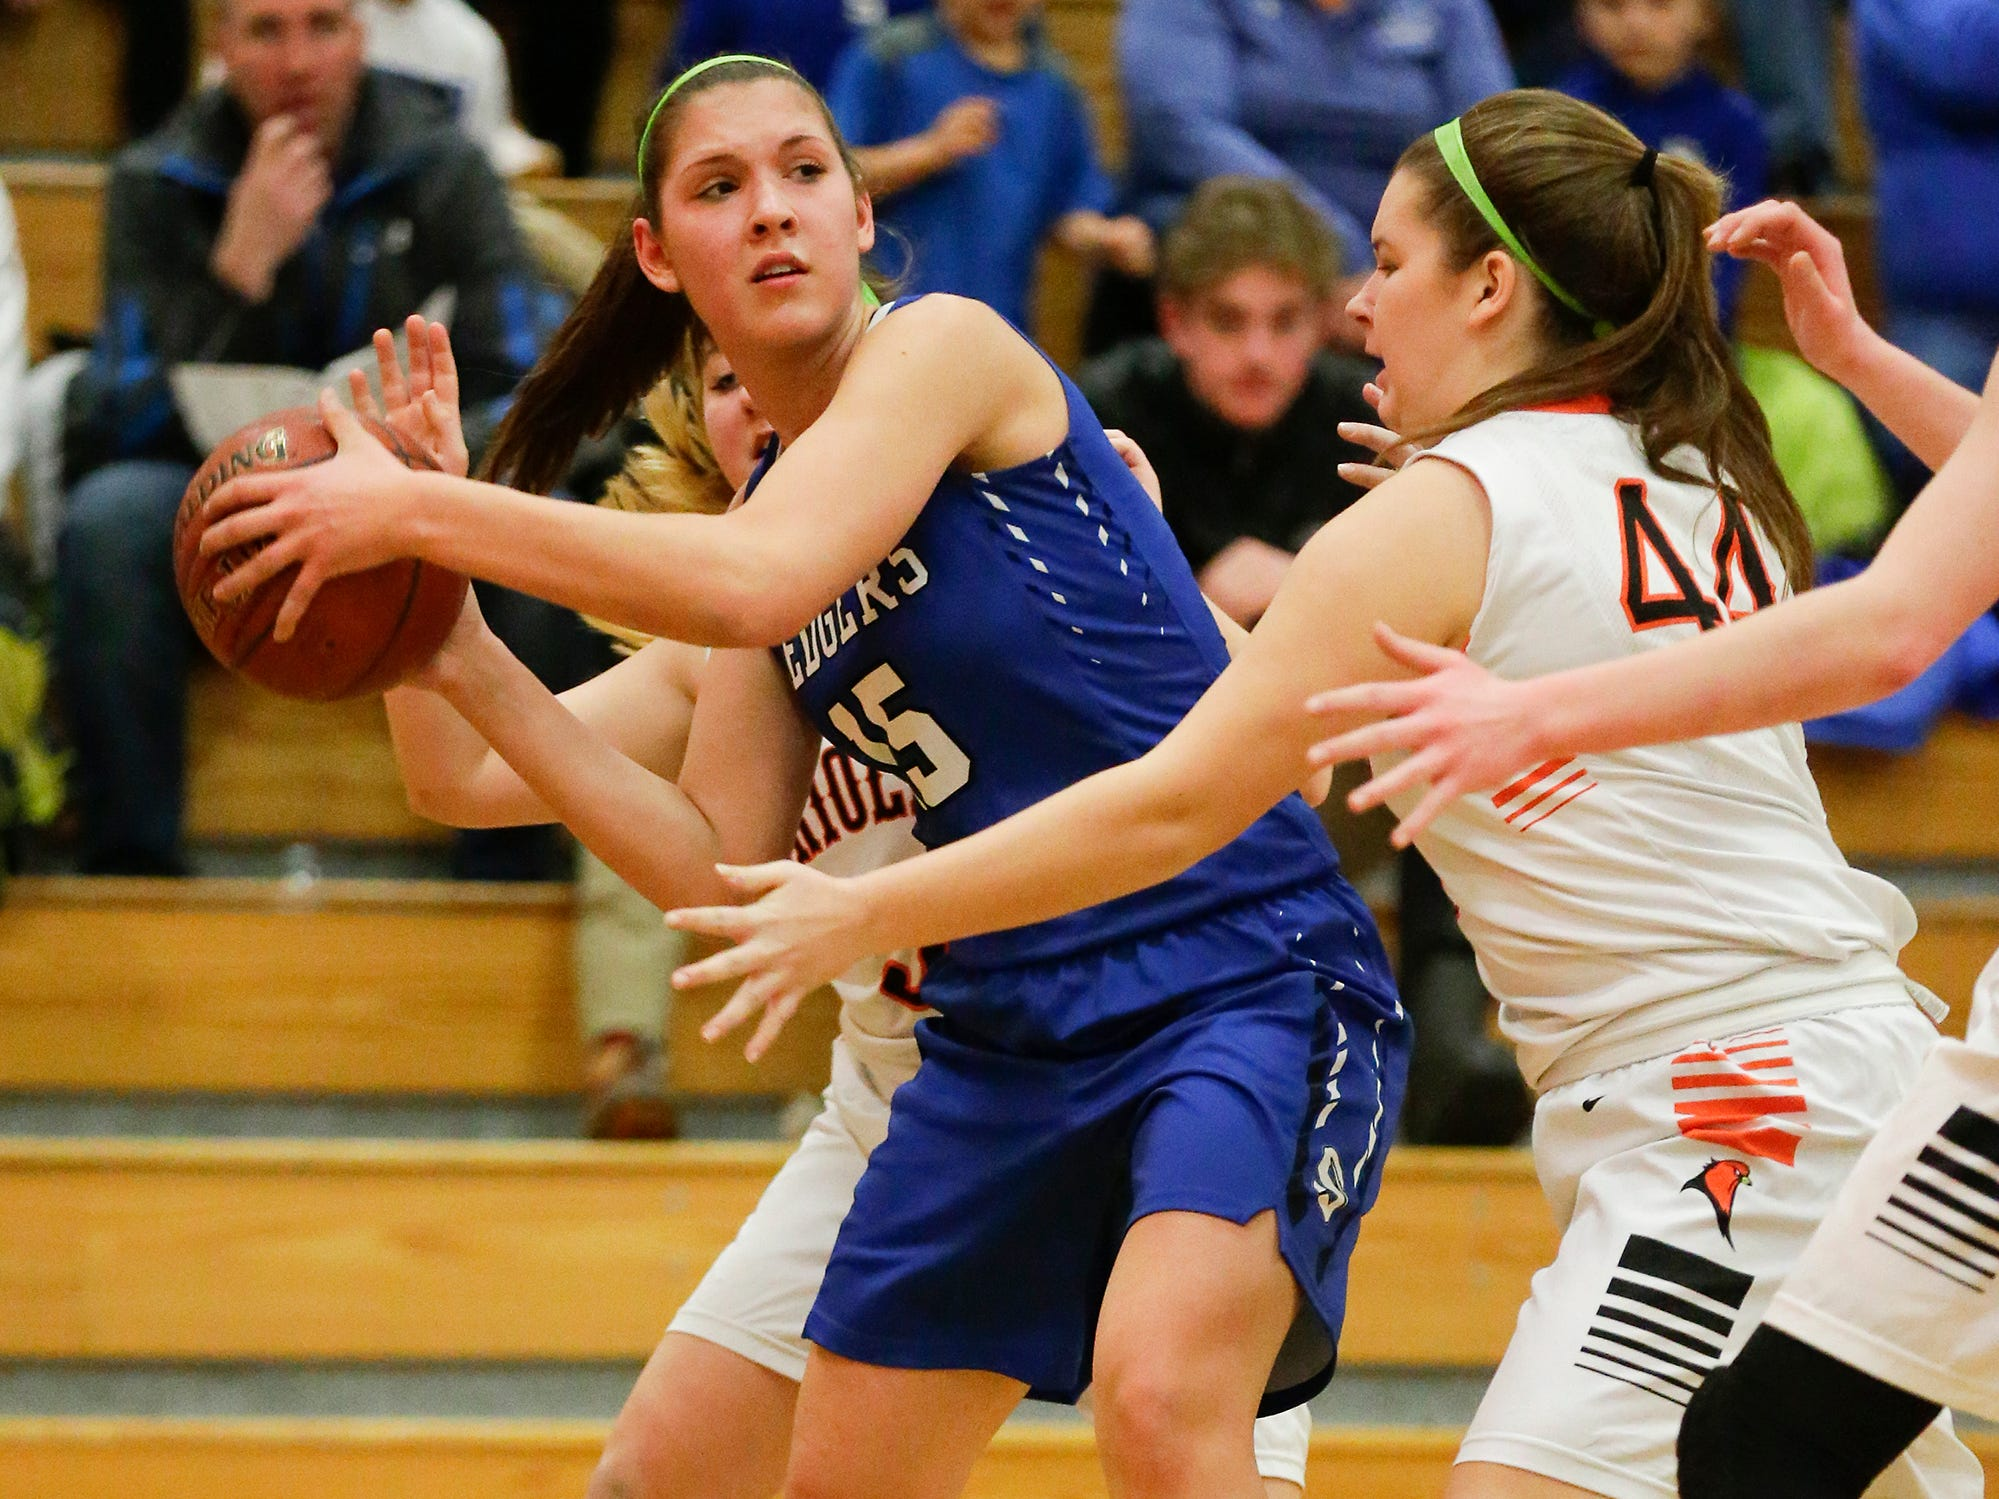 St. Mary's Springs Academy girls basketball's Maddie Gehring looks to pass the ball against North Fond du Lac High School during their game Friday, January 4, 2019 in North Fond du lac. Doug Raflik/USA TODAY NETWORK-Wisconsin